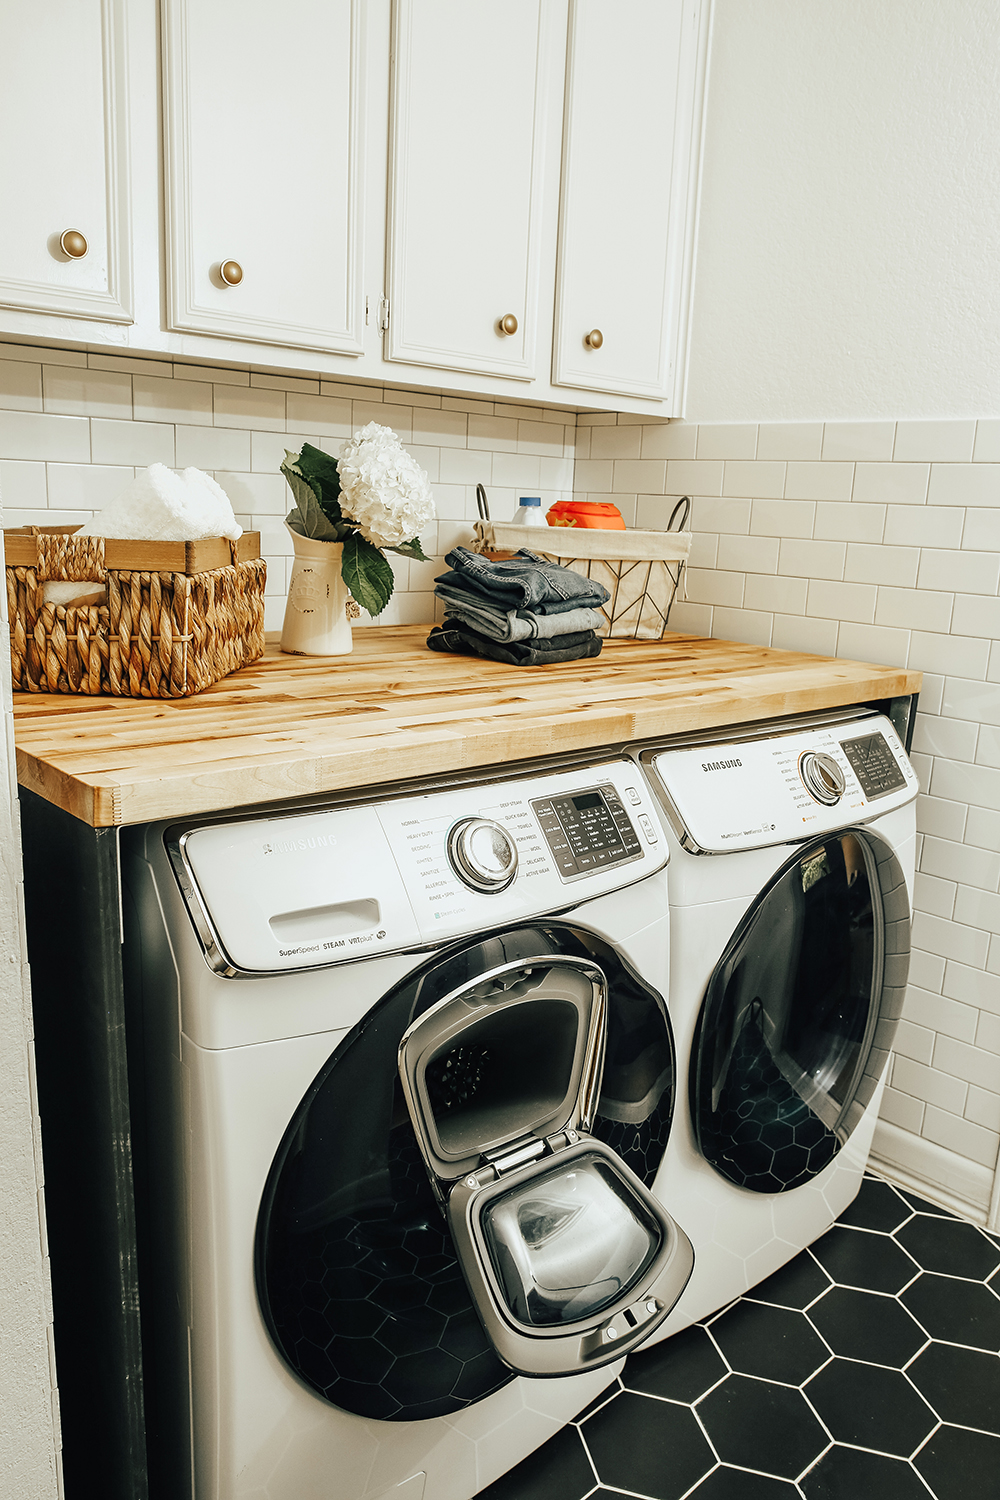 livvyland-blog-olivia-watson-home-decor-interior-design-before-after-laundry-room-makeover-renovation-update-5